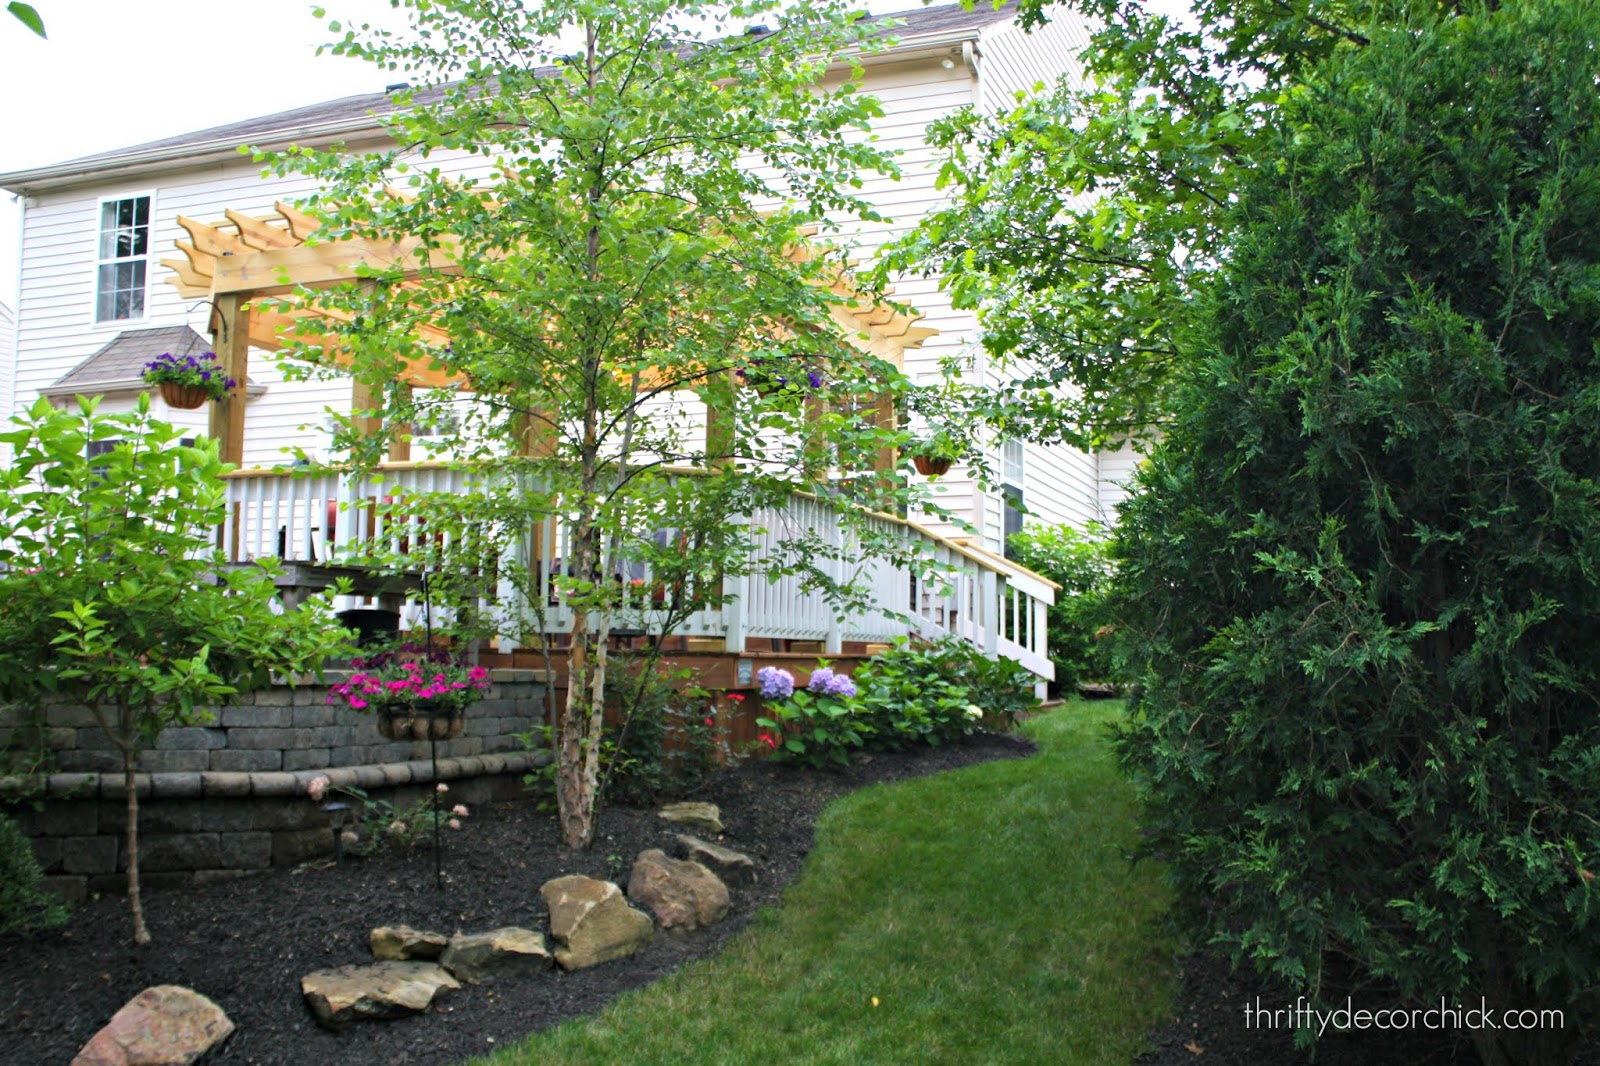 Landscaping around patio with rocks and plants